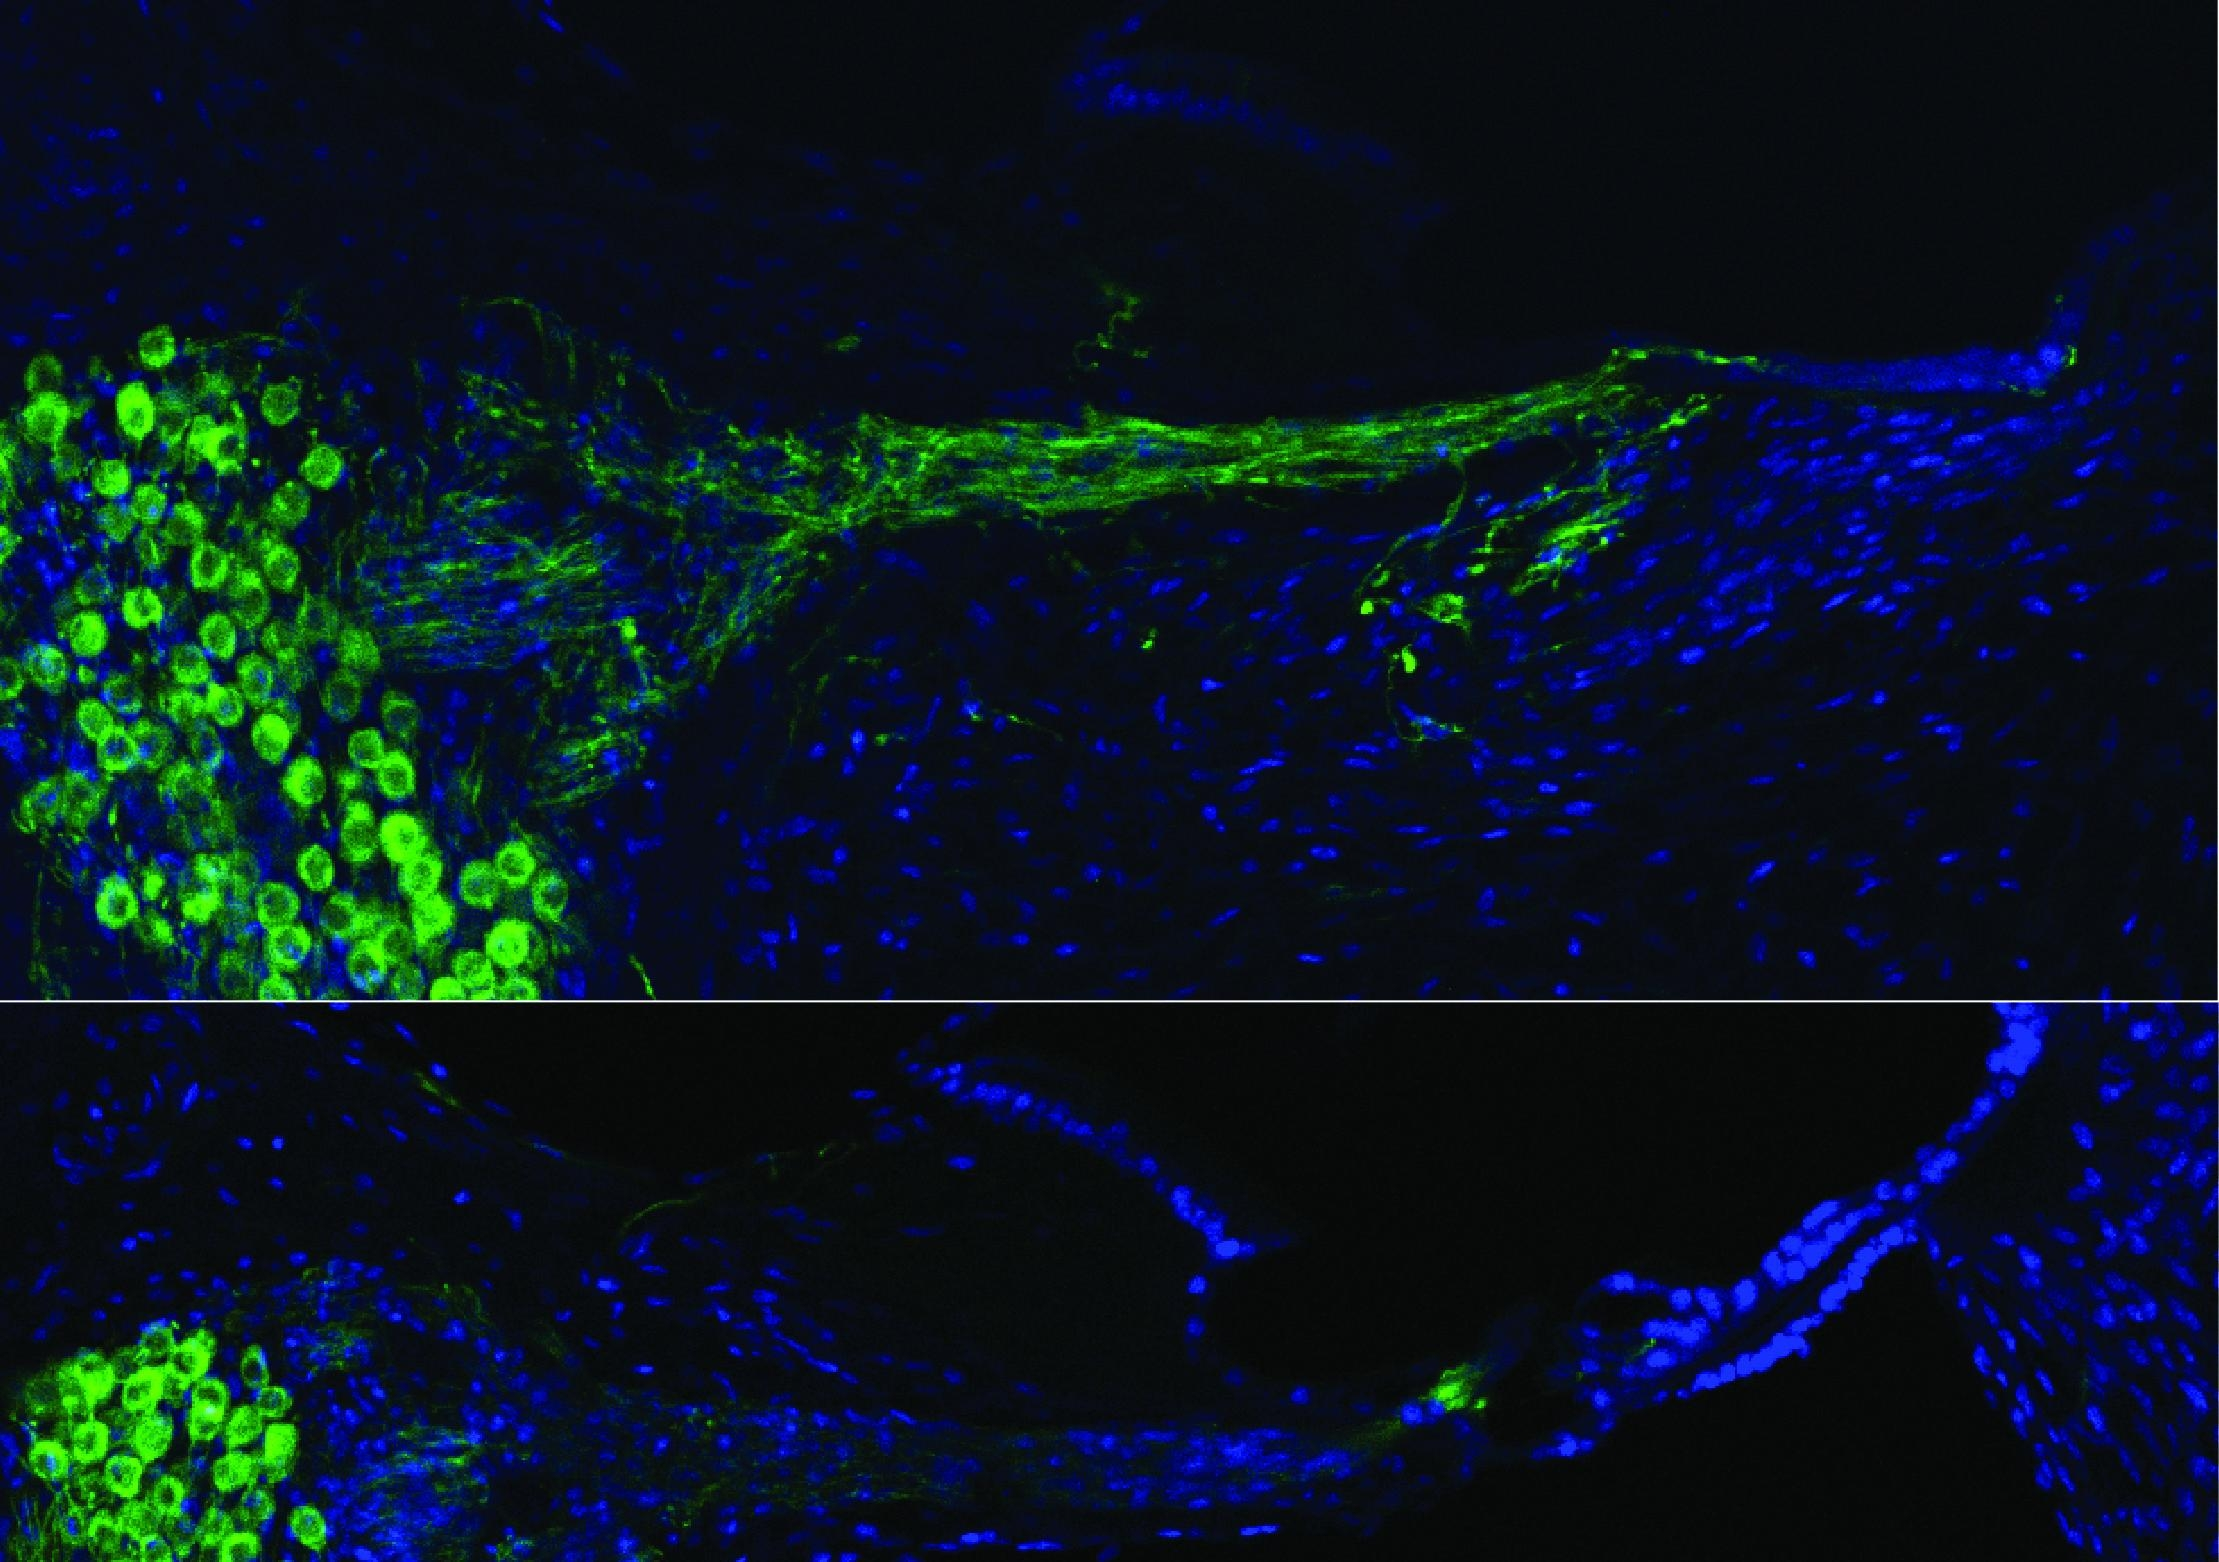 Gene therapy (top) vers no treatment (bottom) cochleae image5 0 0